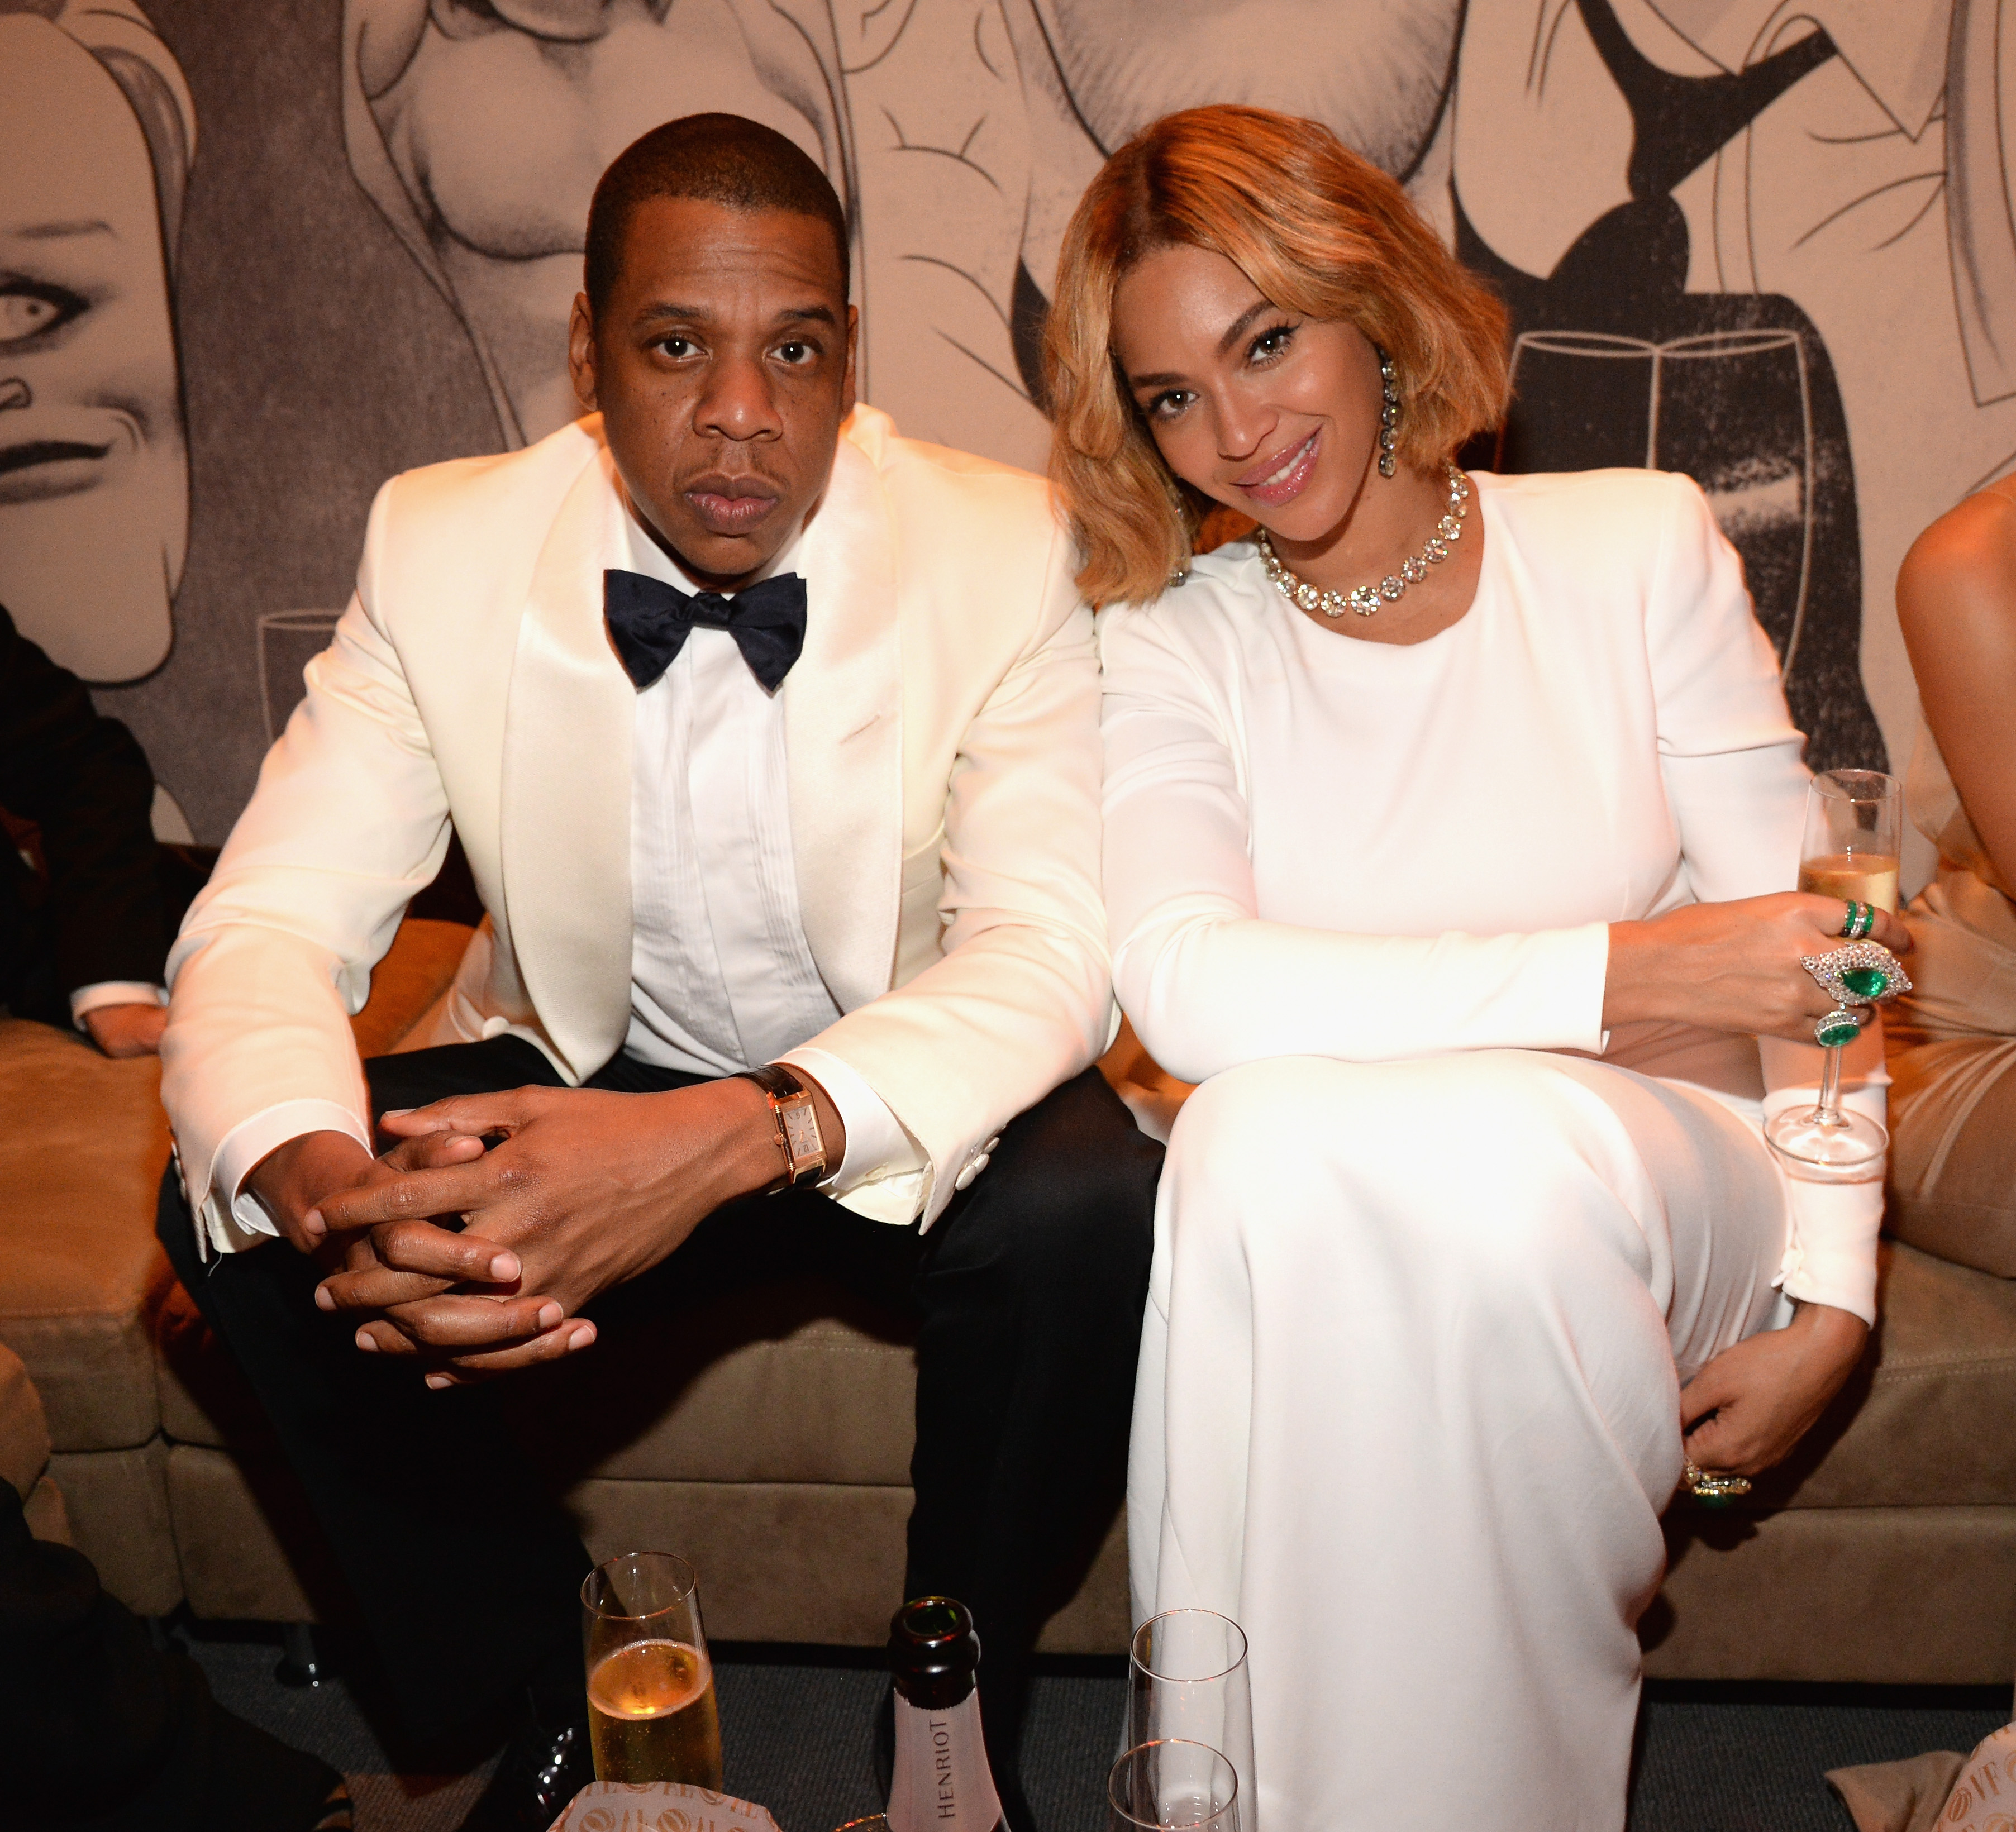 BEVERLY HILLS, CA - FEBRUARY 22: (EXCLUSIVE ACCESS, SPECIAL RATES APPLY) Jay Z and Beyonce attend the 2015 Vanity Fair Oscar Party hosted by Graydon Carter at the Wallis Annenberg Center for the Performing Arts on February 22, 2015 in Beverly Hills, California. (Photo by Kevin Mazur/VF15/WireImage)